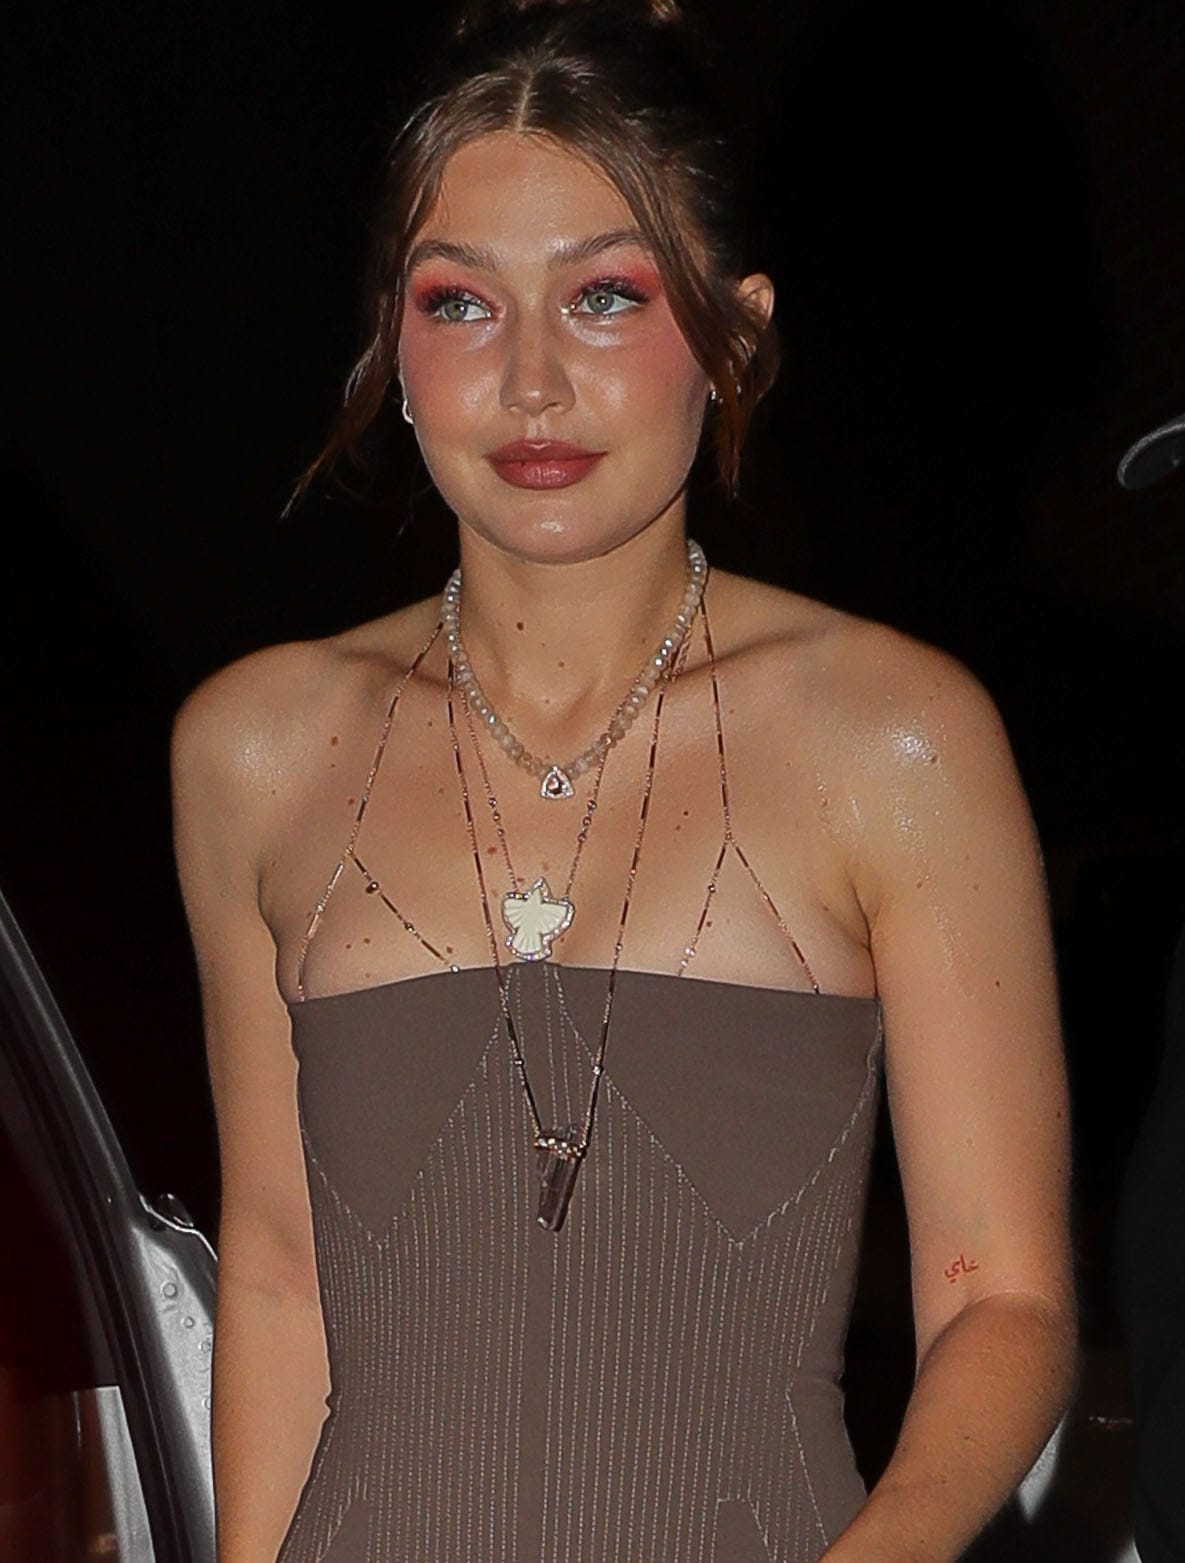 Gigi Hadid wears red smokey eye-makeup and styles her look with Jacquie Aiche layered necklaces